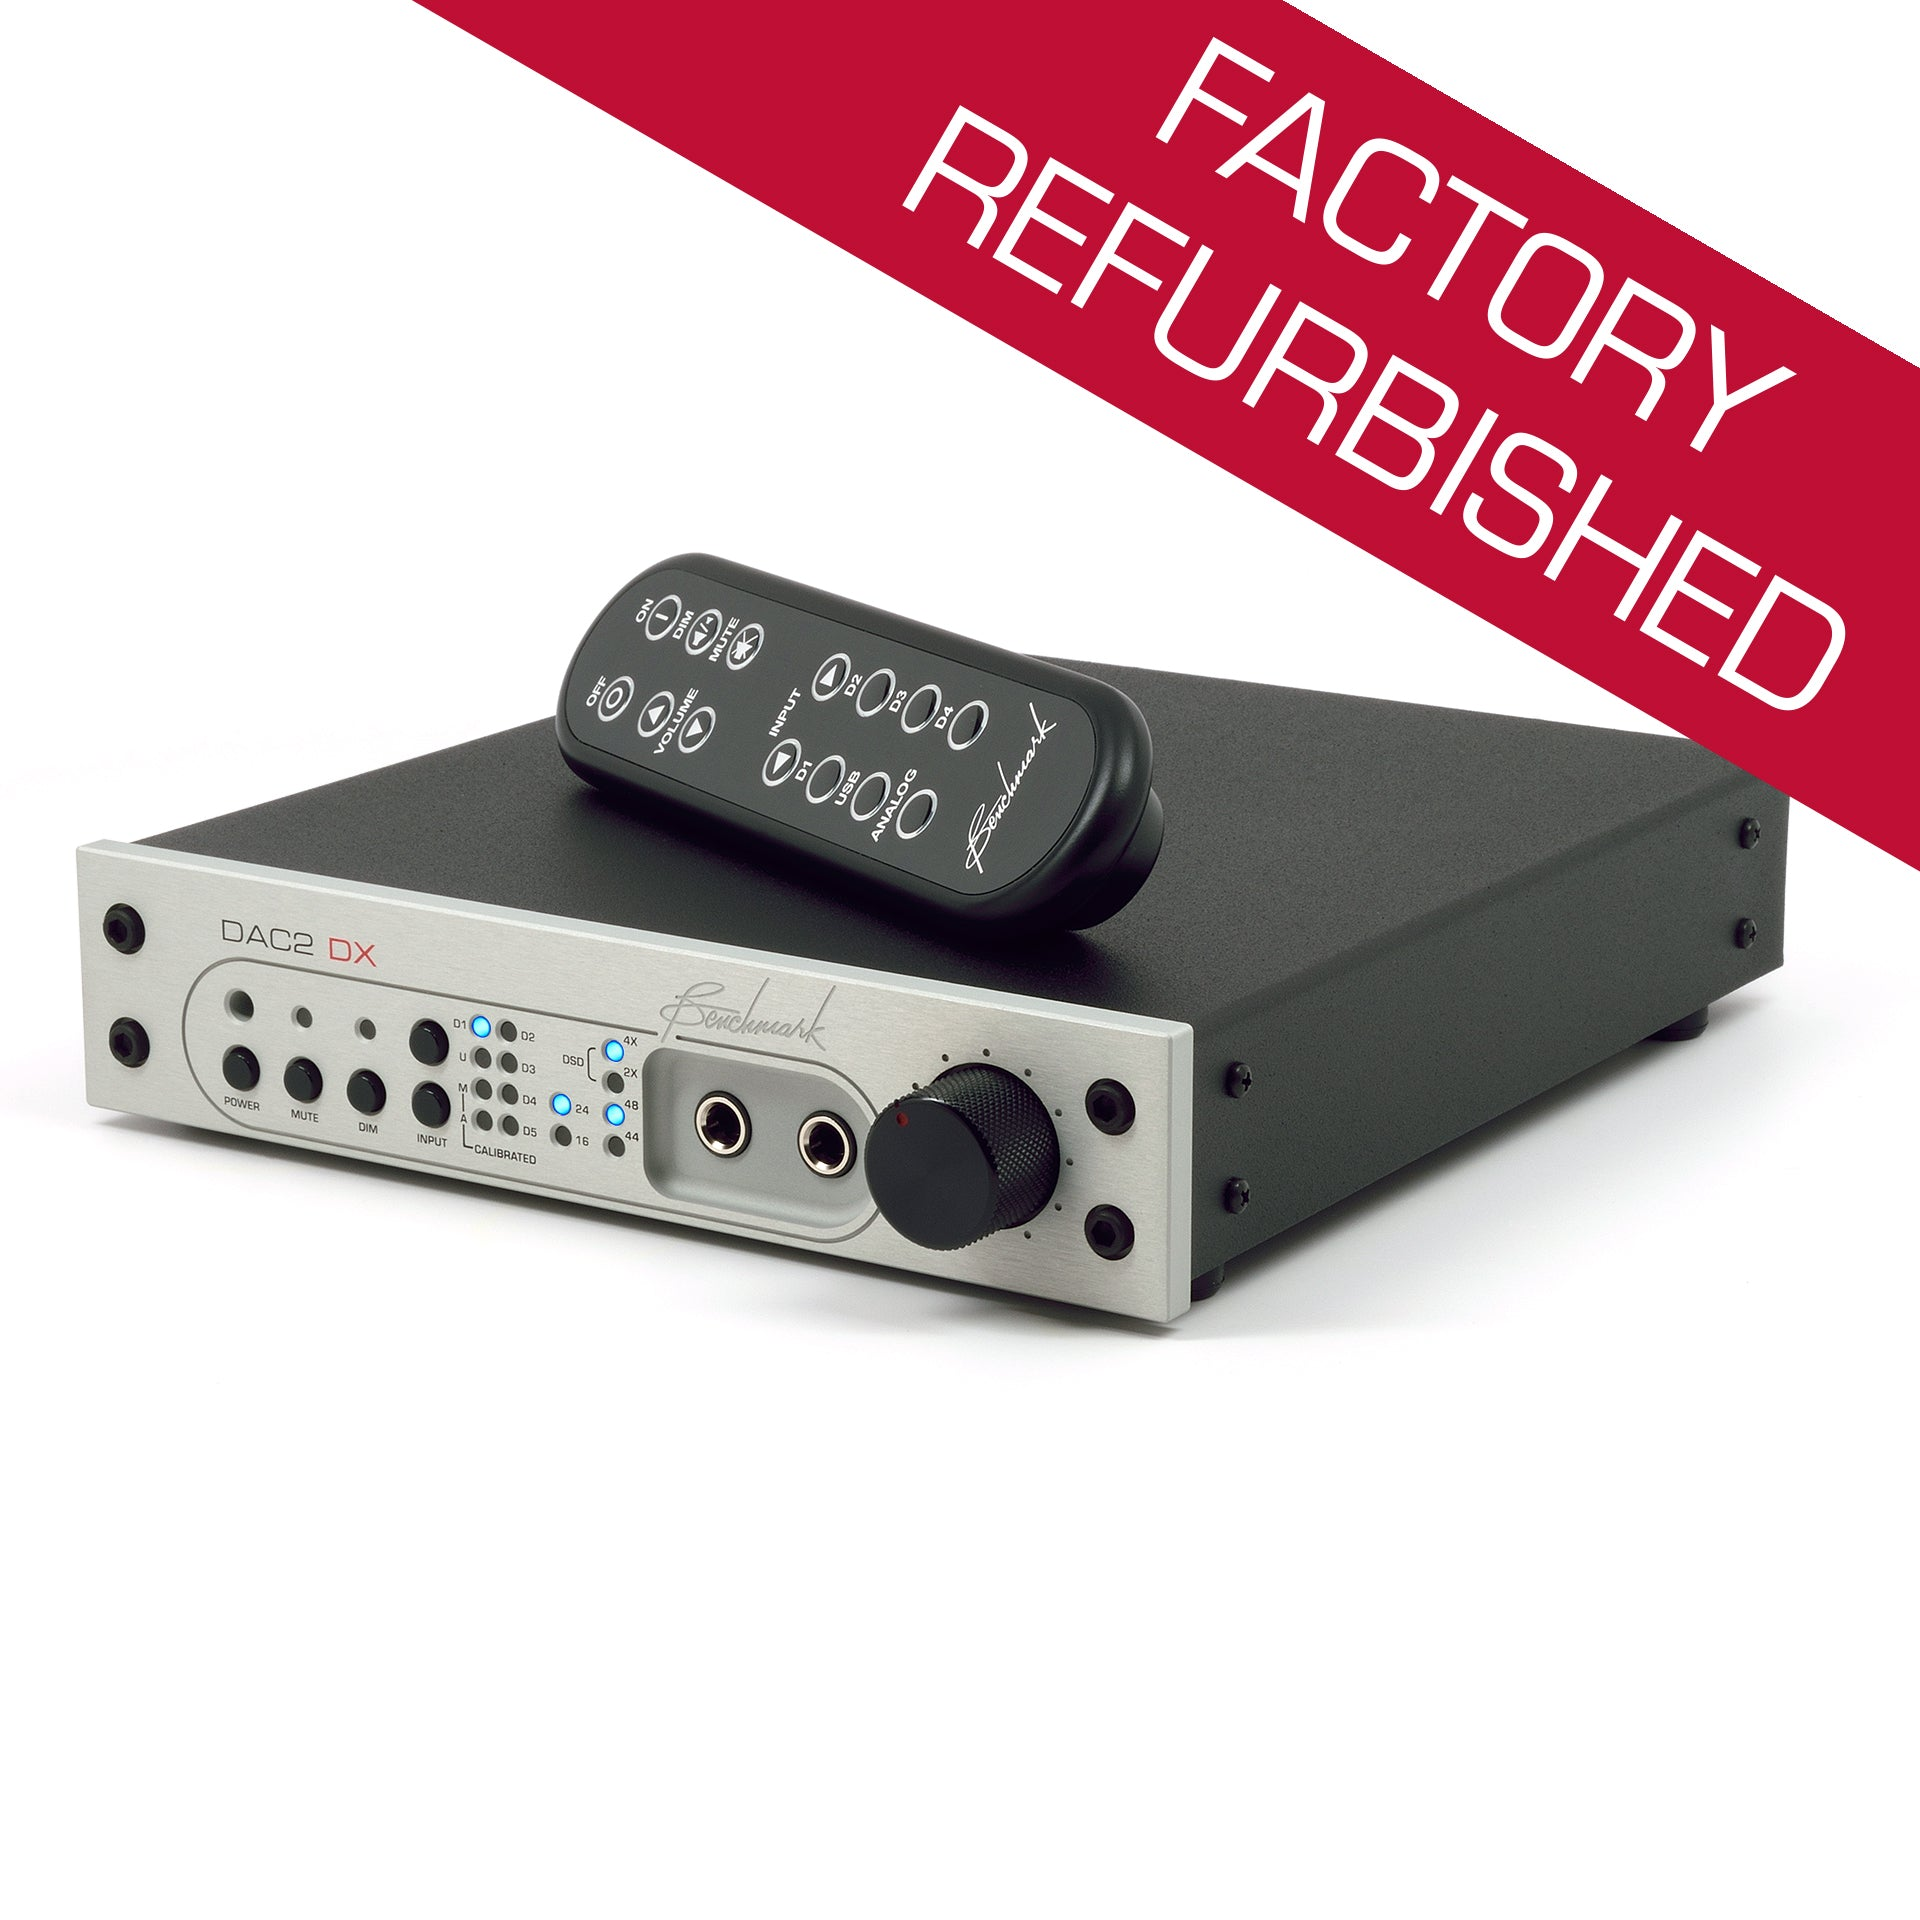 Benchmark DAC2 DX - Digital to Analog Audio Converter - Factory Refurbished